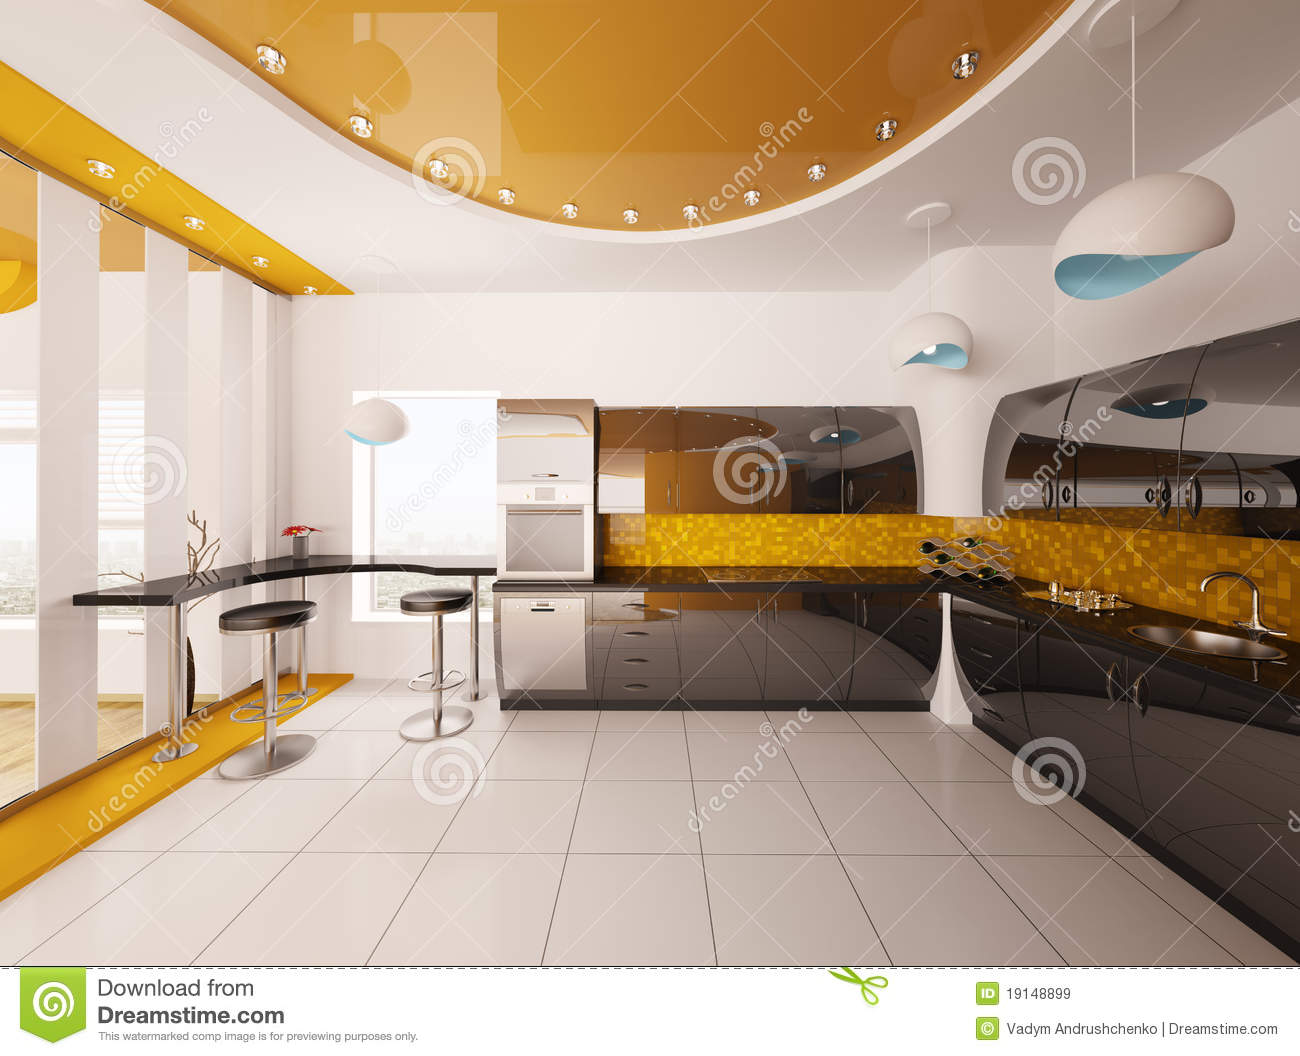 Interior design of modern kitchen 3d render stock illustration image 19148899 - Modern house interior design kitchen ...